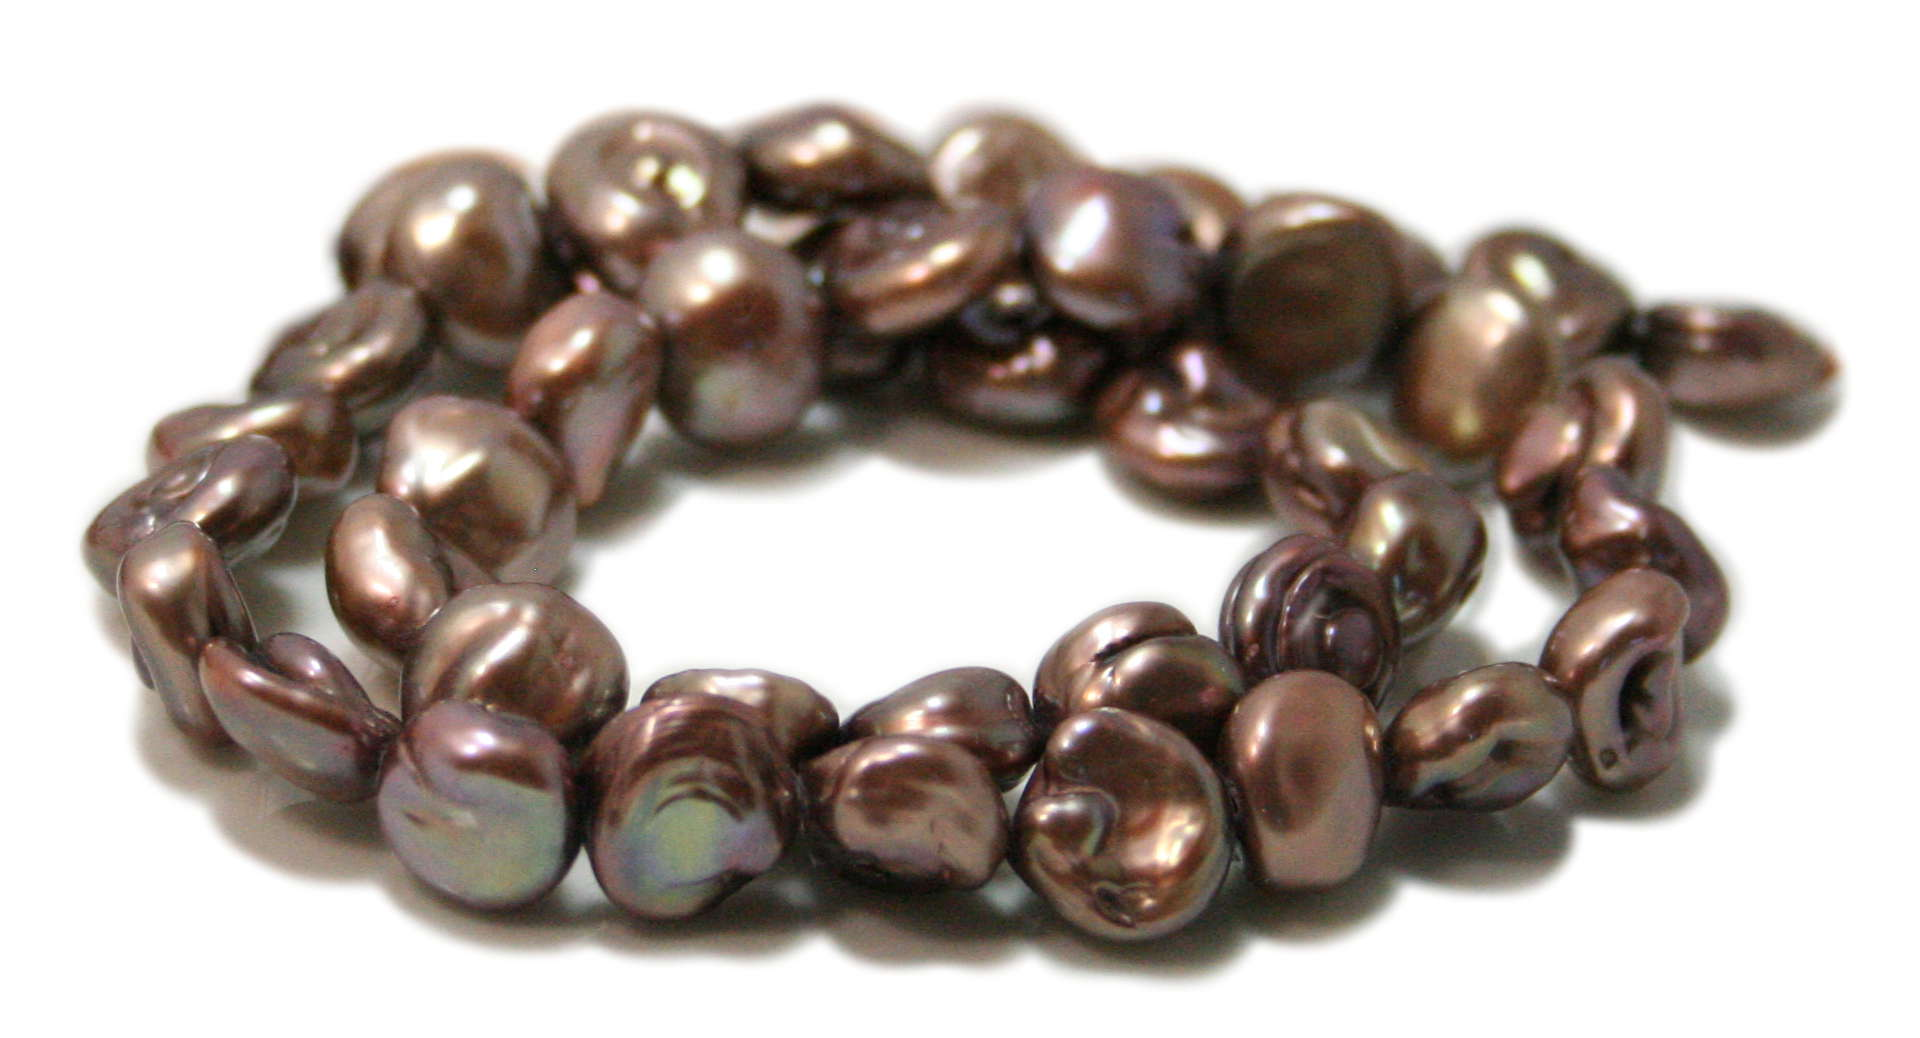 Freshwater pearl string, buttons, chocolate, 10-11mm, 40cm